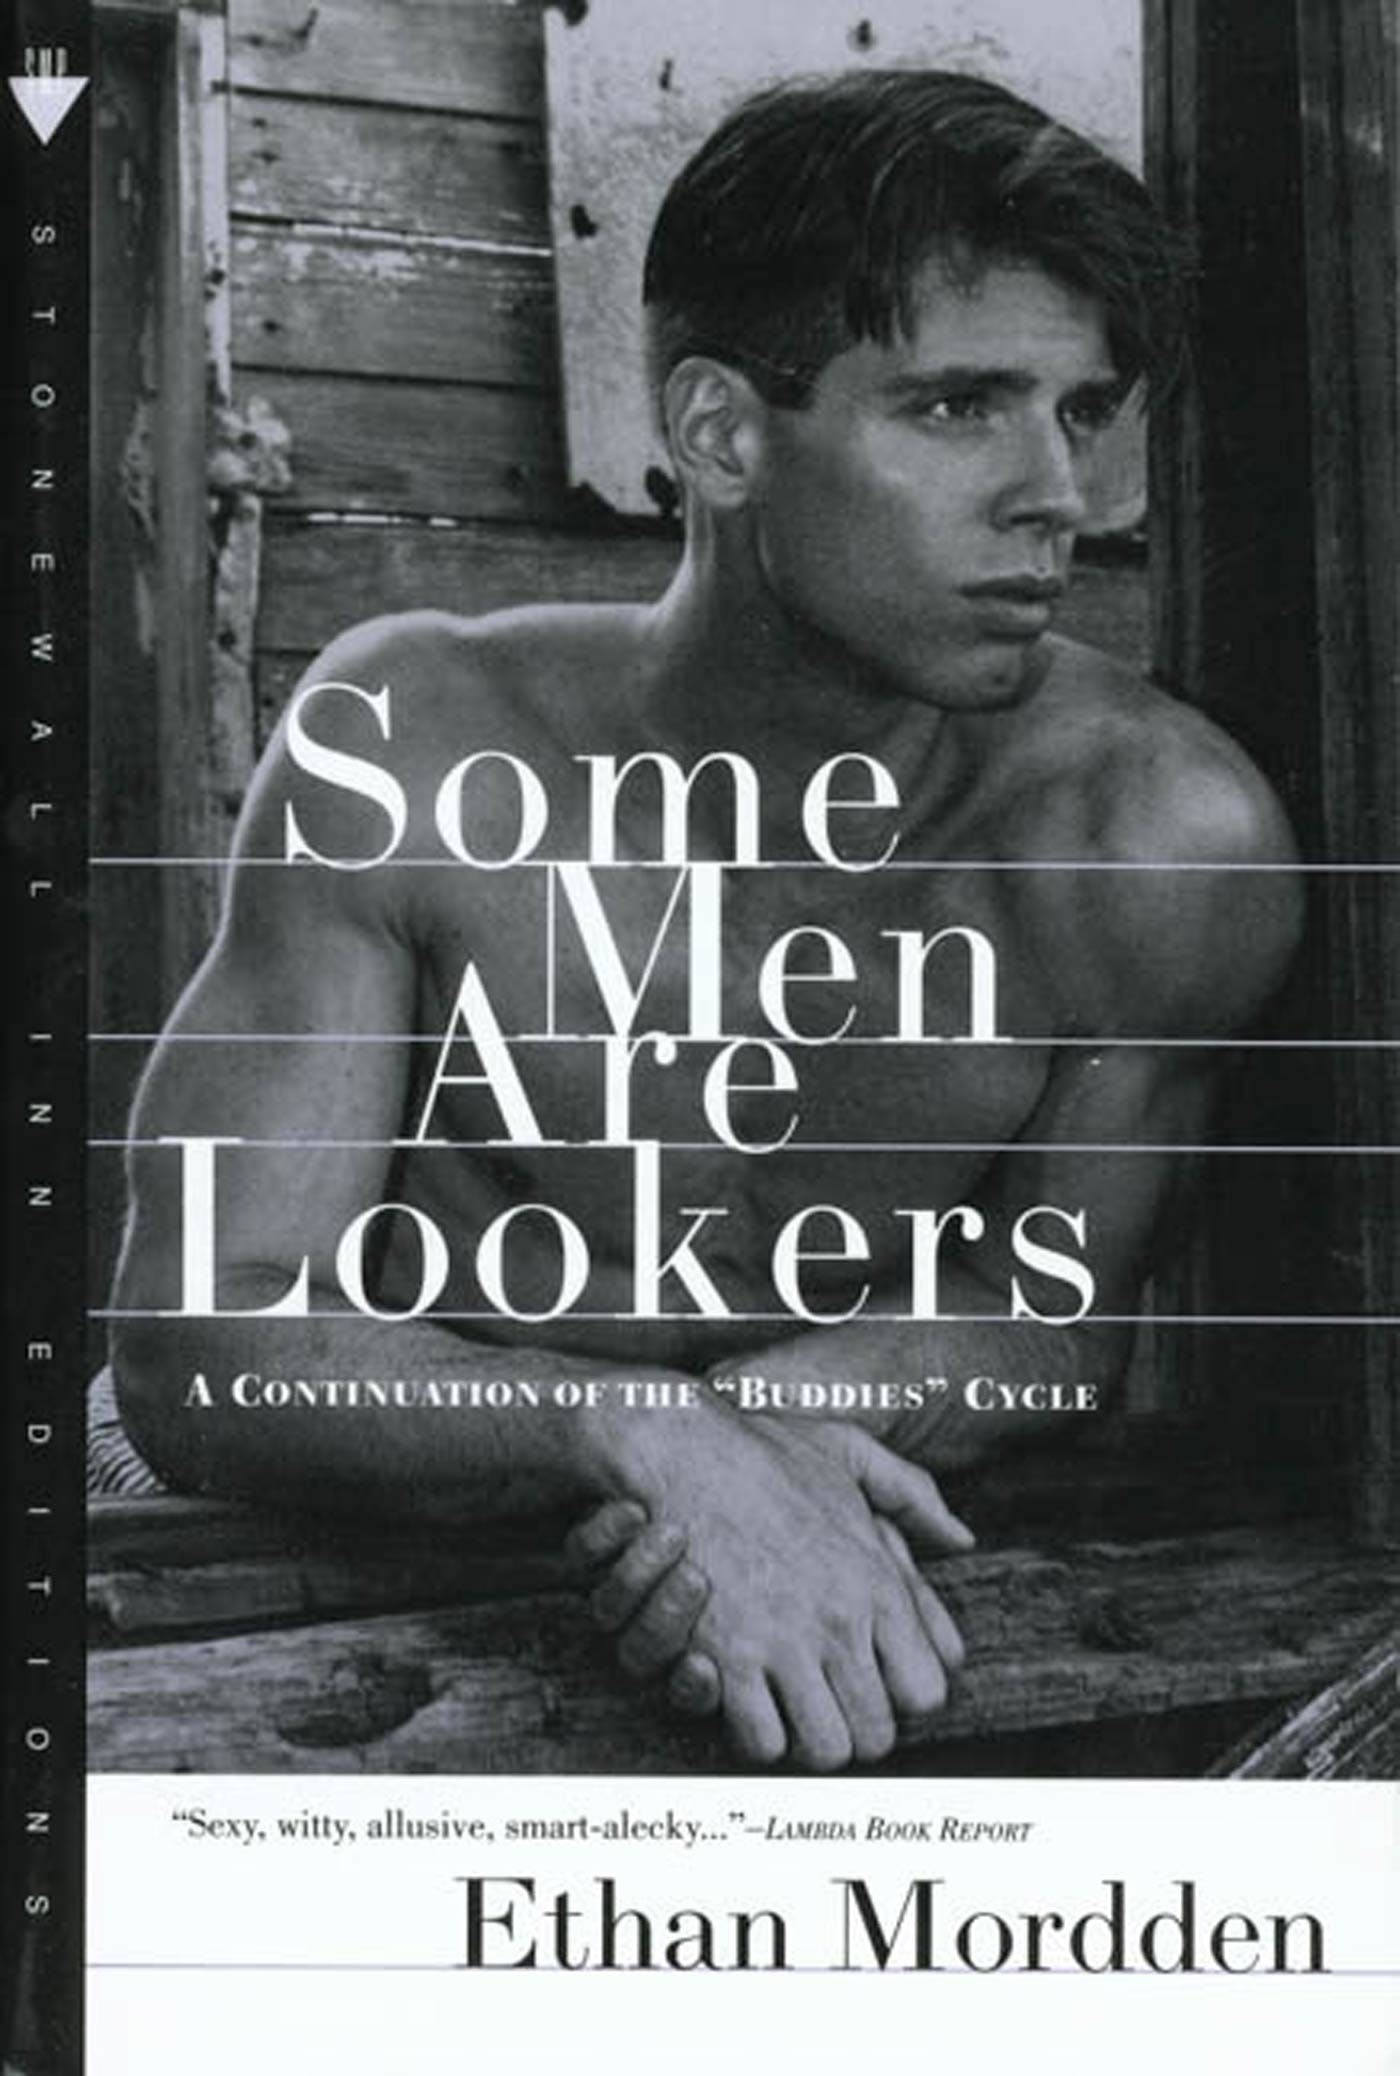 Image of Some Men Are Lookers